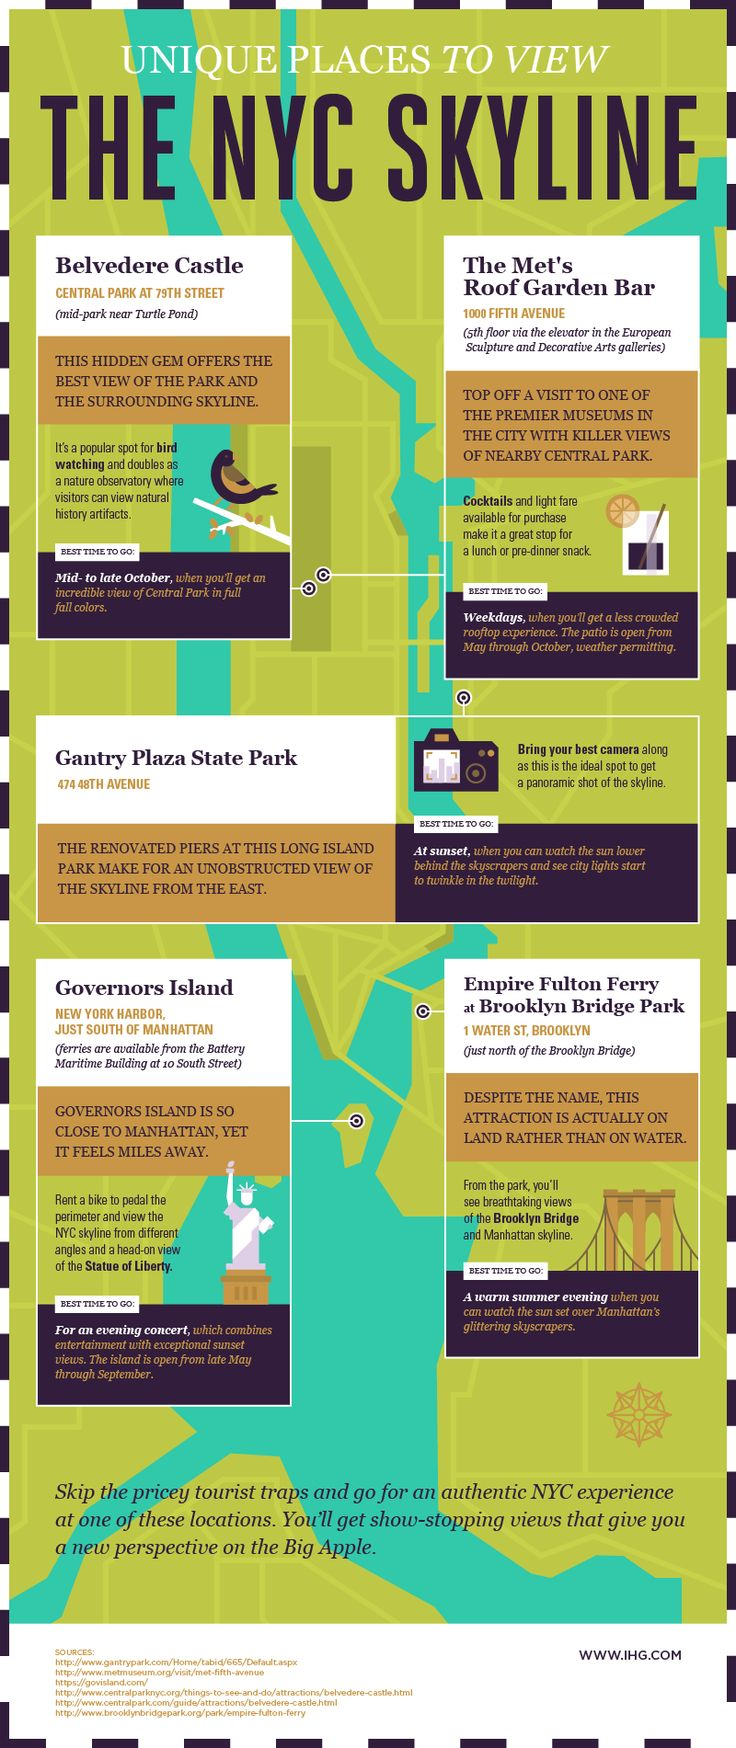 An interesting infographic with several recommendations for a perfect view of NYC's skyline!